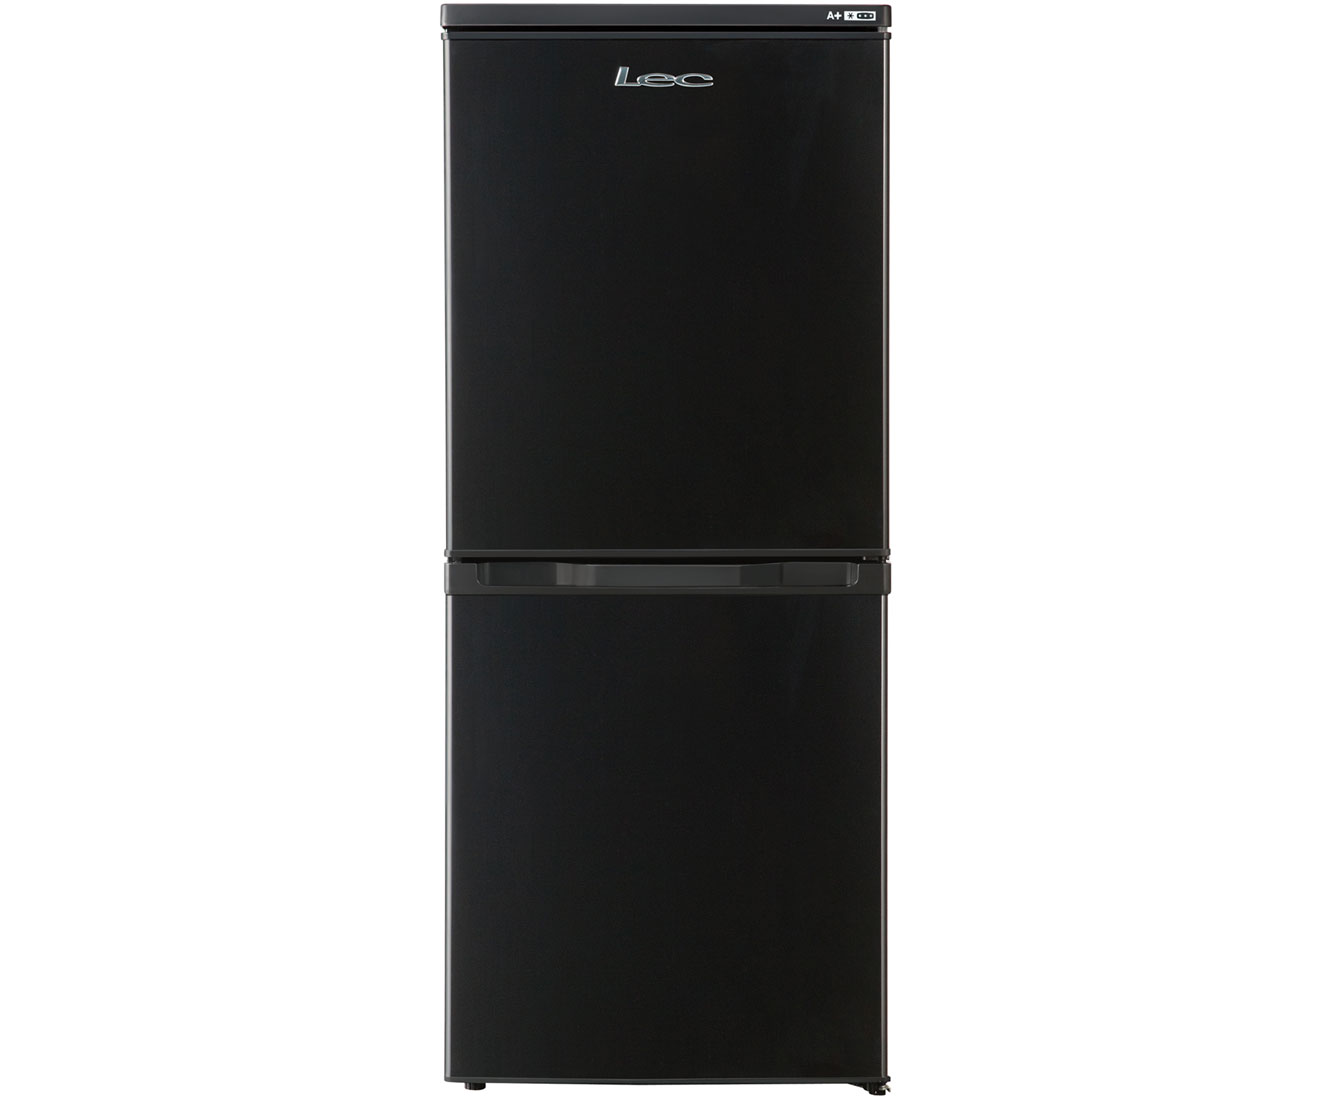 Lec TF55142B 50/50 Frost Free Fridge Freezer - Black